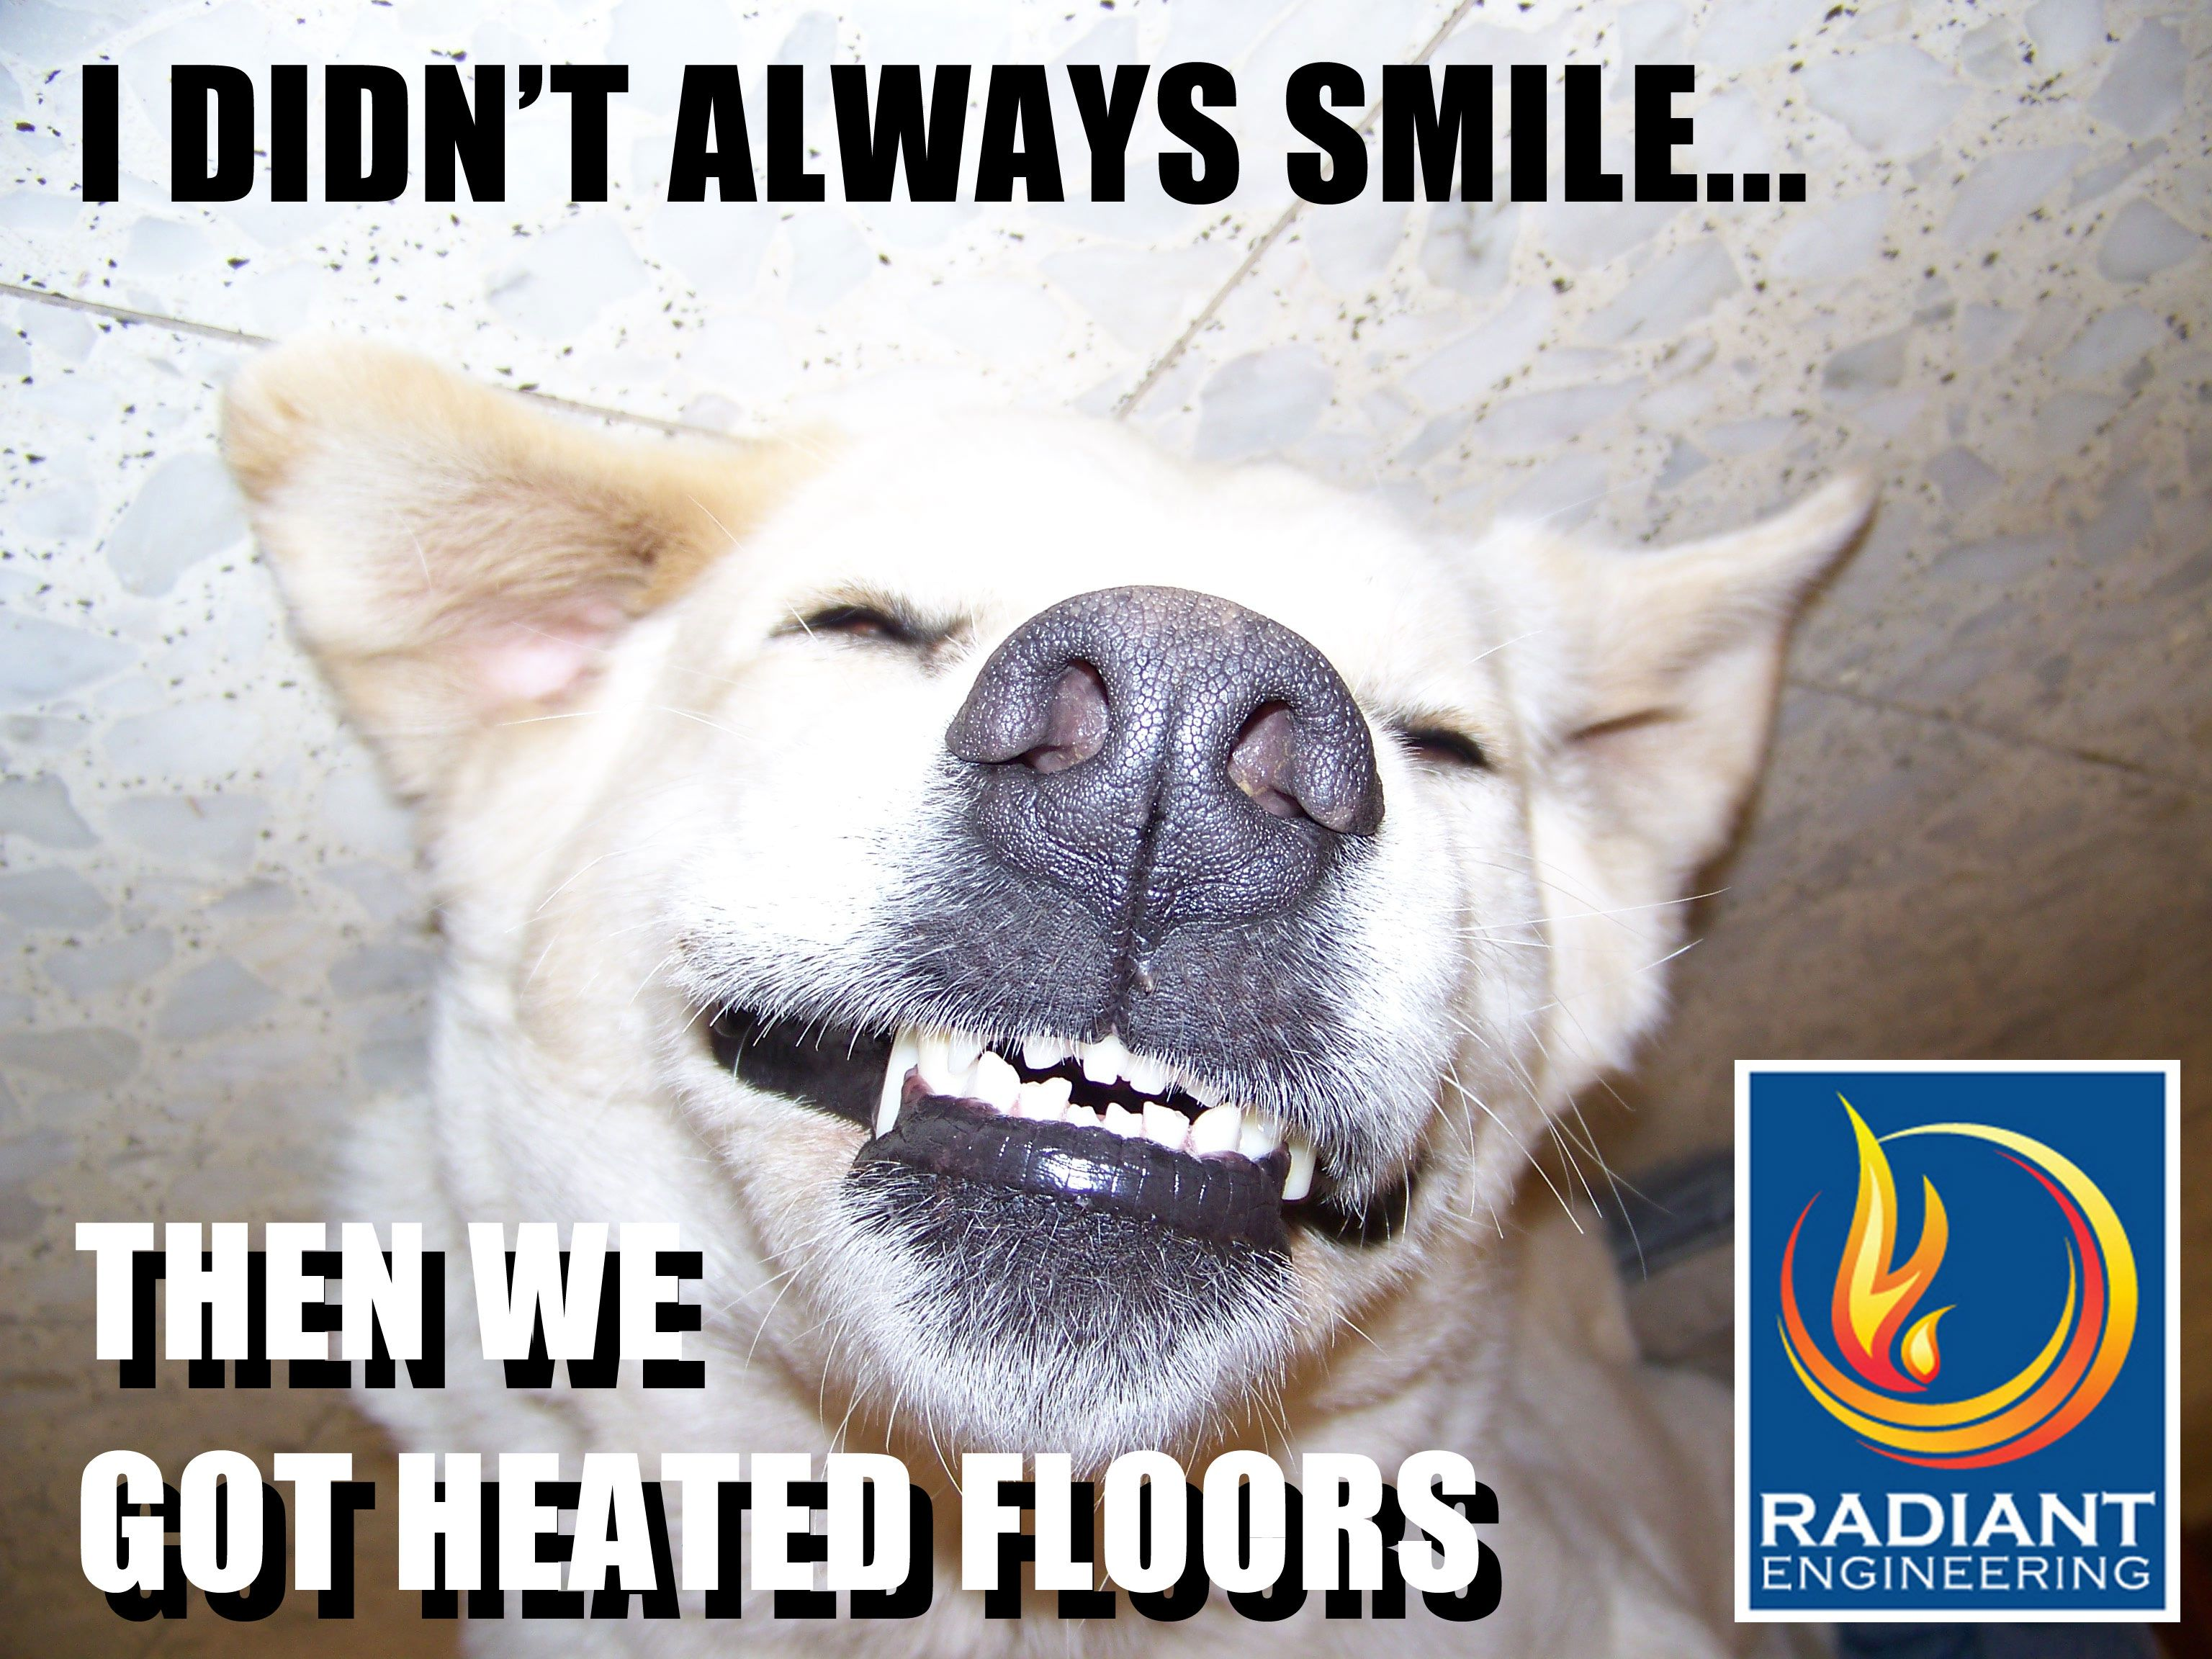 Add comfort for everyone in your home with radiant heated